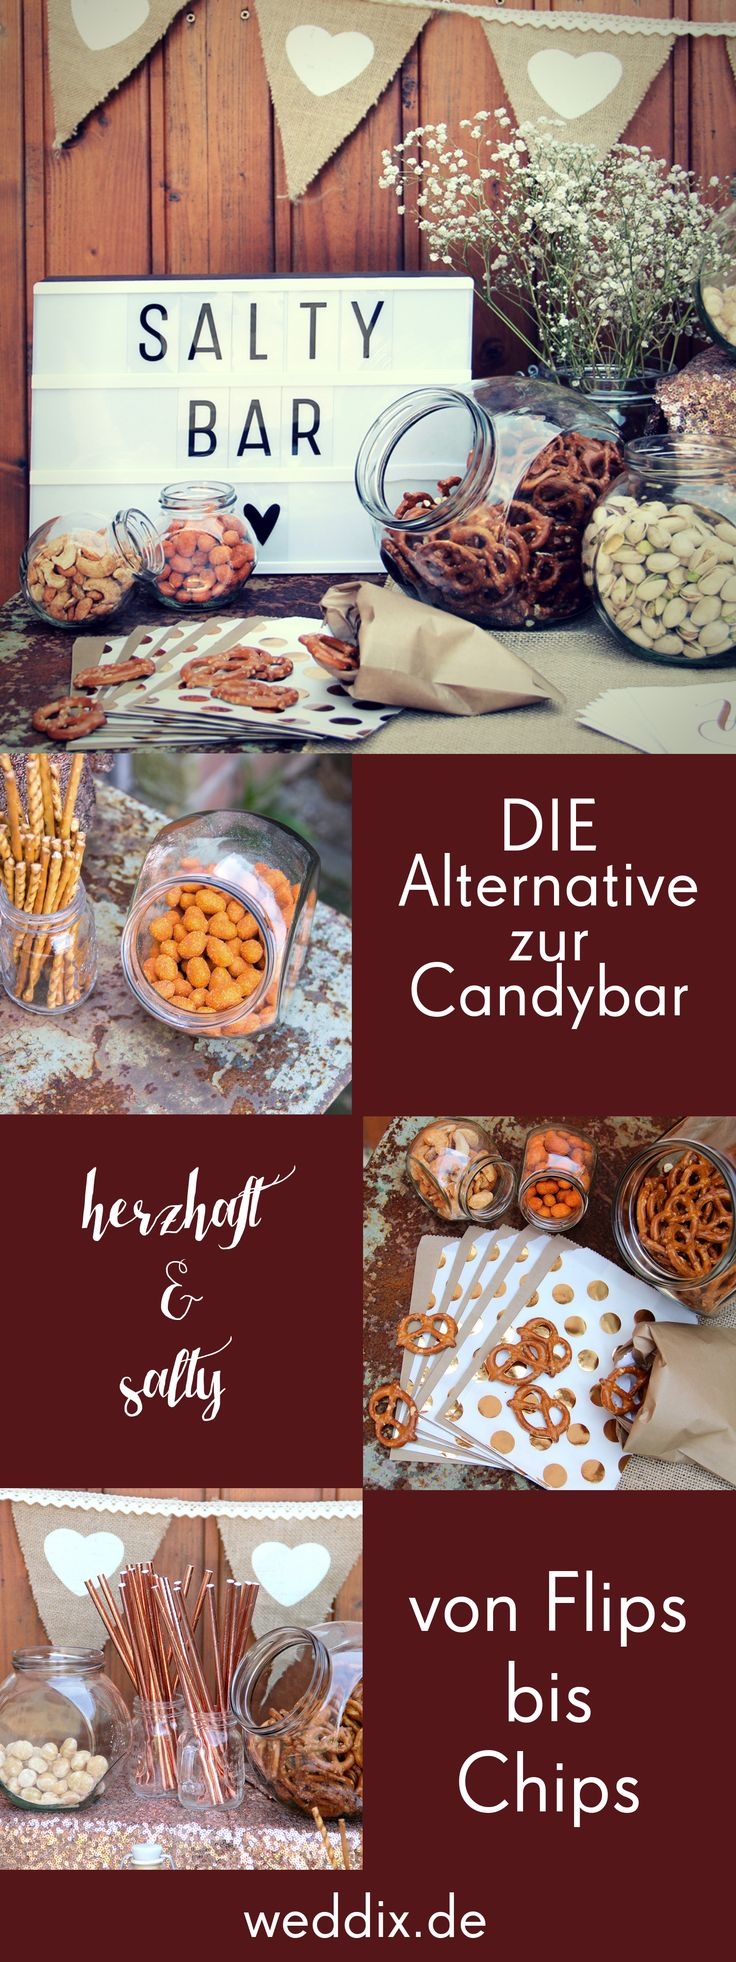 6 Alternativen zur Candybar